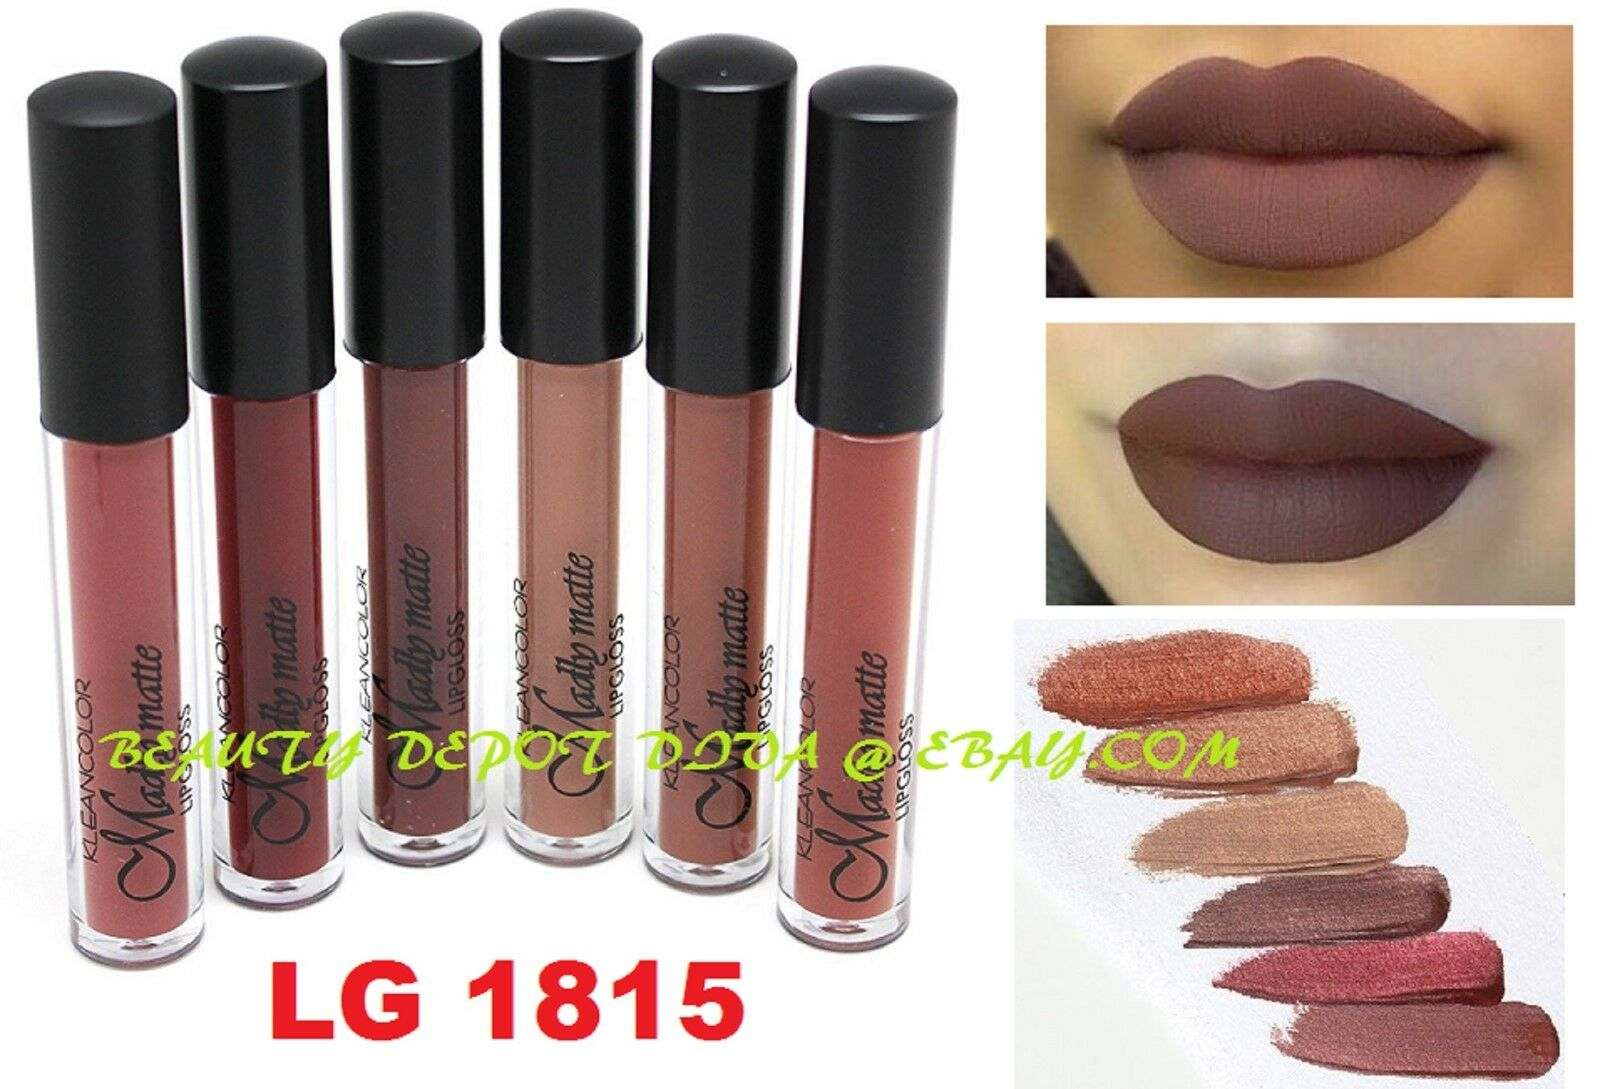 6 NEW Waterproof Long Lasting Makeup Lip Liquid Matte Lipstick Lip Gloss